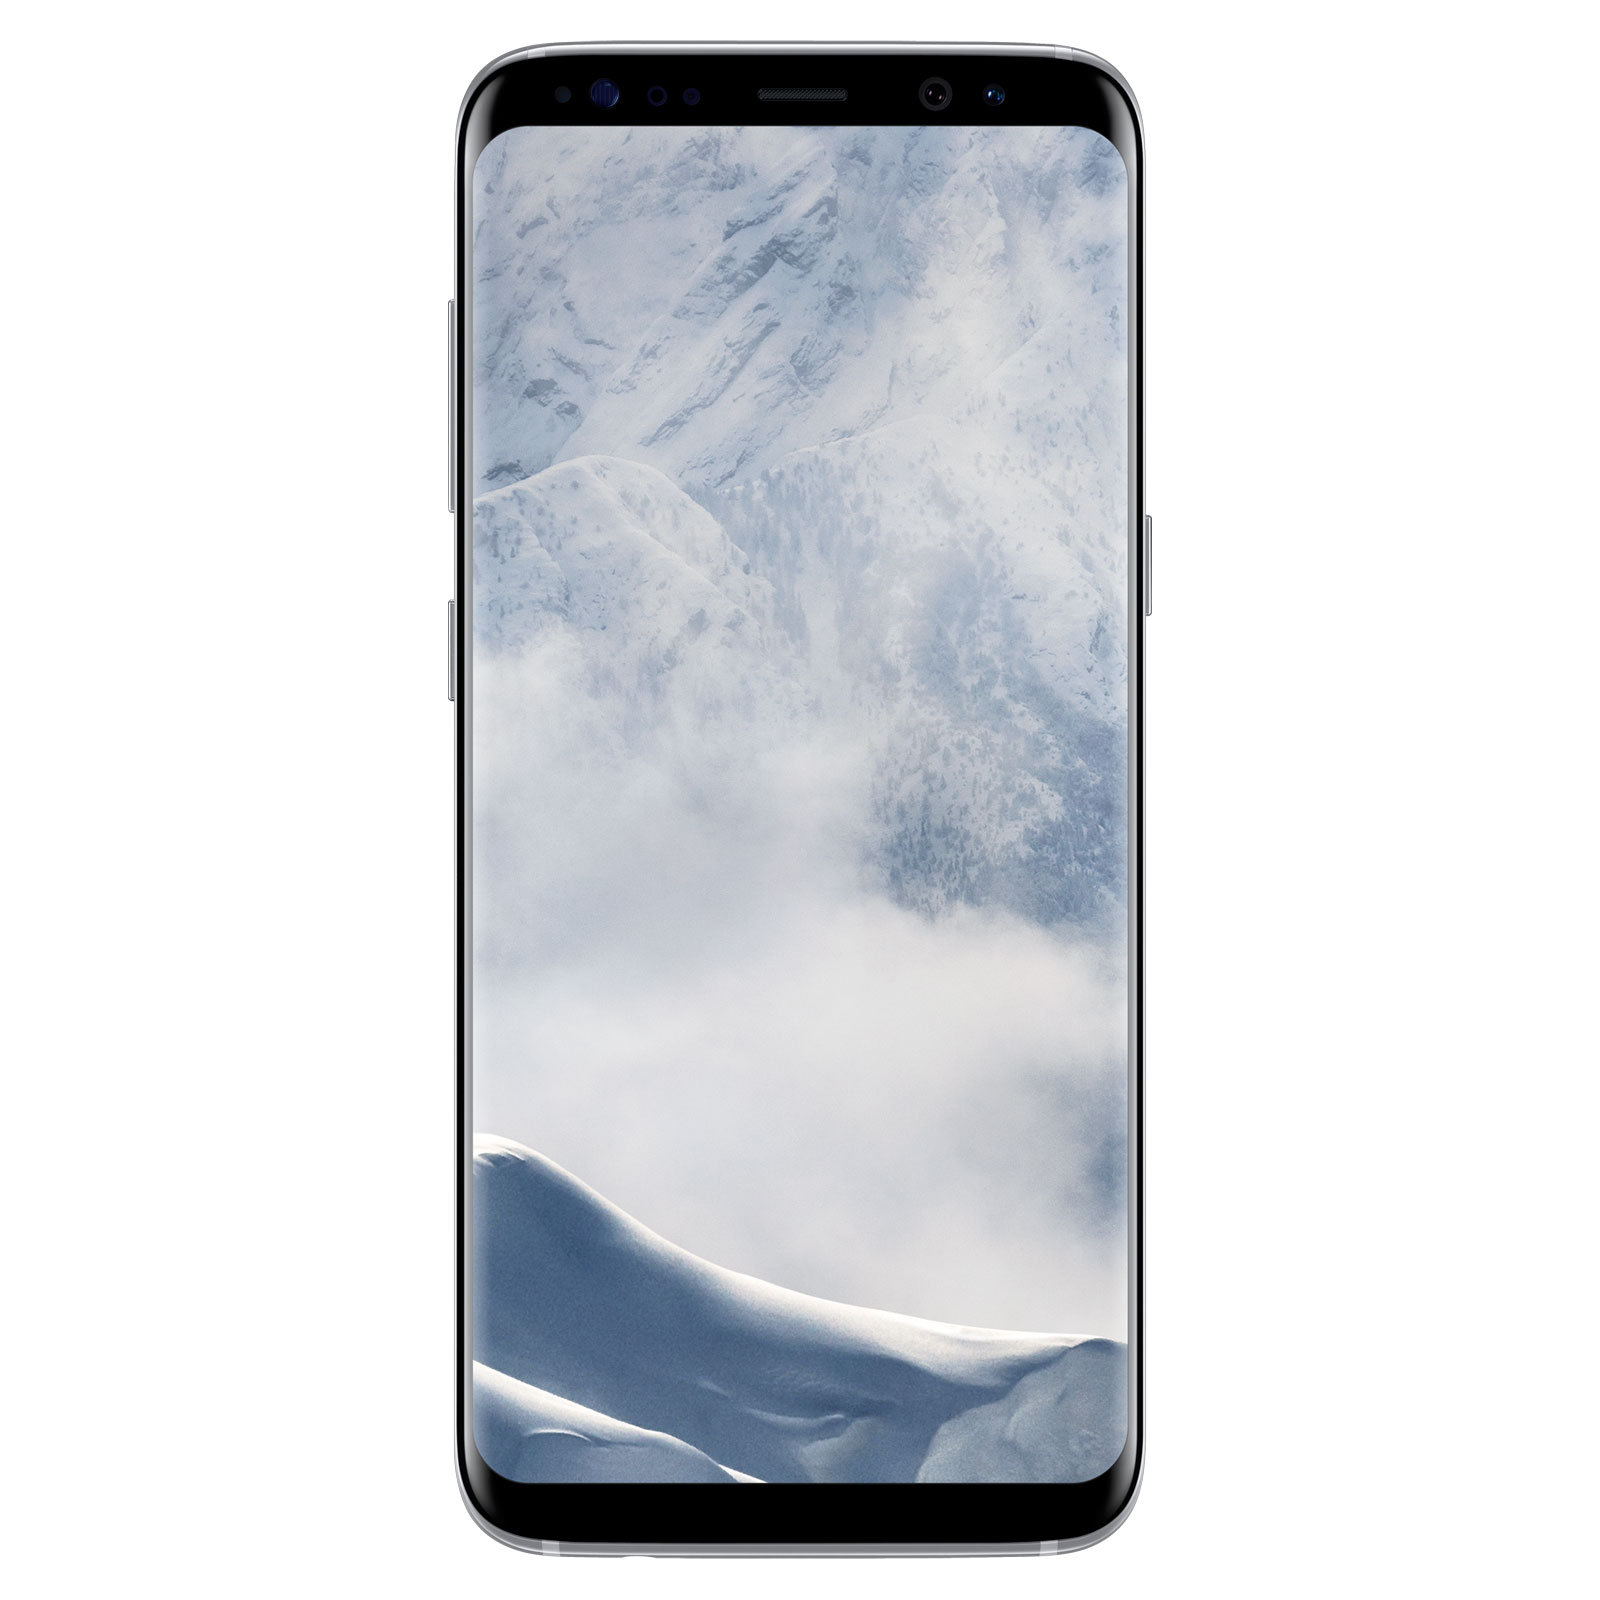 "Mobile & smartphone Samsung Galaxy S8 SM-G950F Argent Polaire 64 Go Smartphone 4G-LTE Advanced IP68 - Exynos 8895 8-Core 2.3 Ghz - RAM 4 Go - Ecran tactile 5.8"" 1440 x 2960 - 64 Go - NFC/Bluetooth 5.0 - 3000 mAh - Android 7.0"